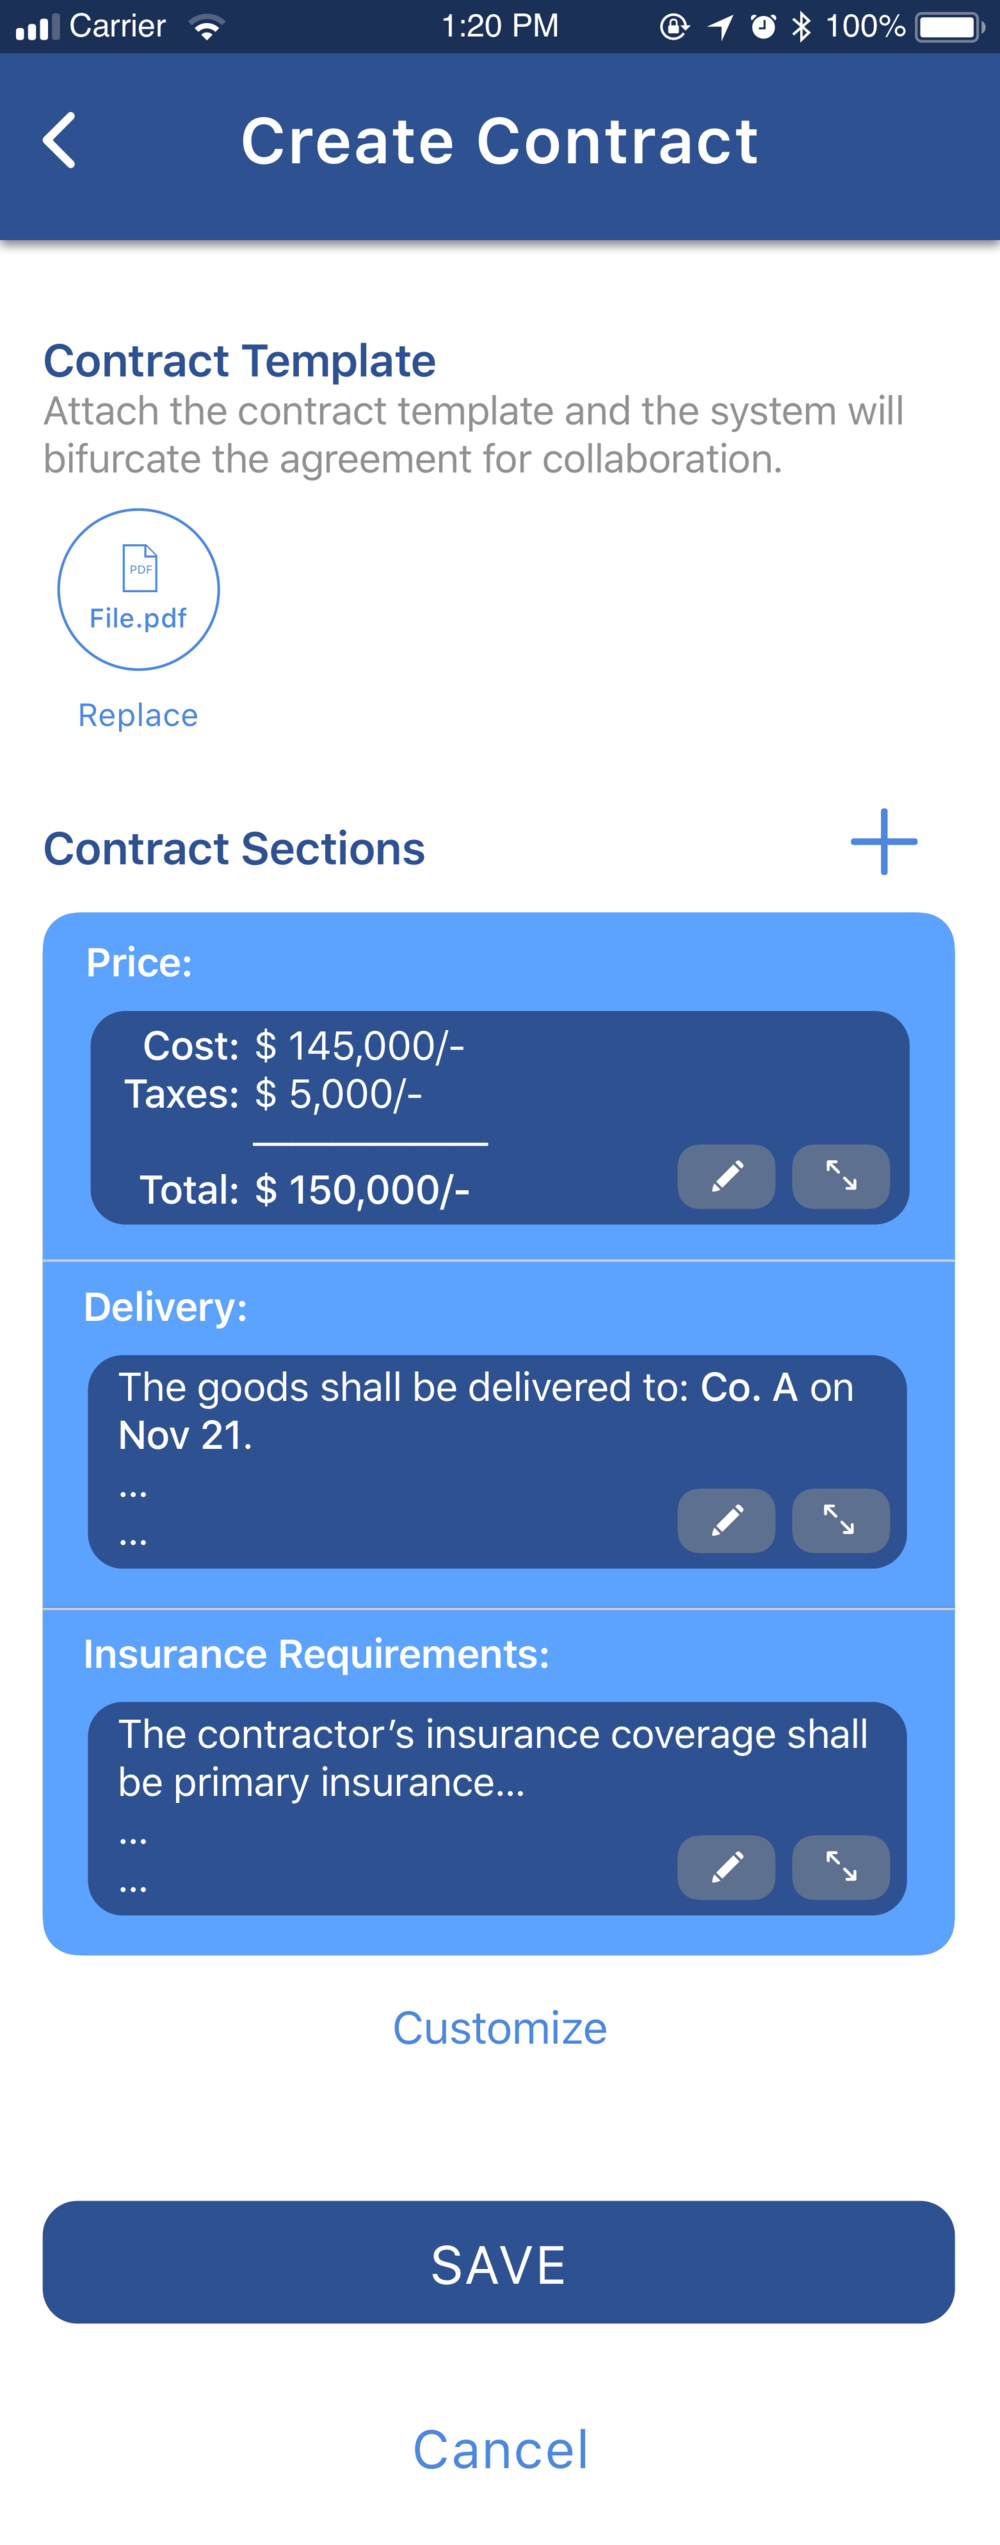 Create contract 1.2